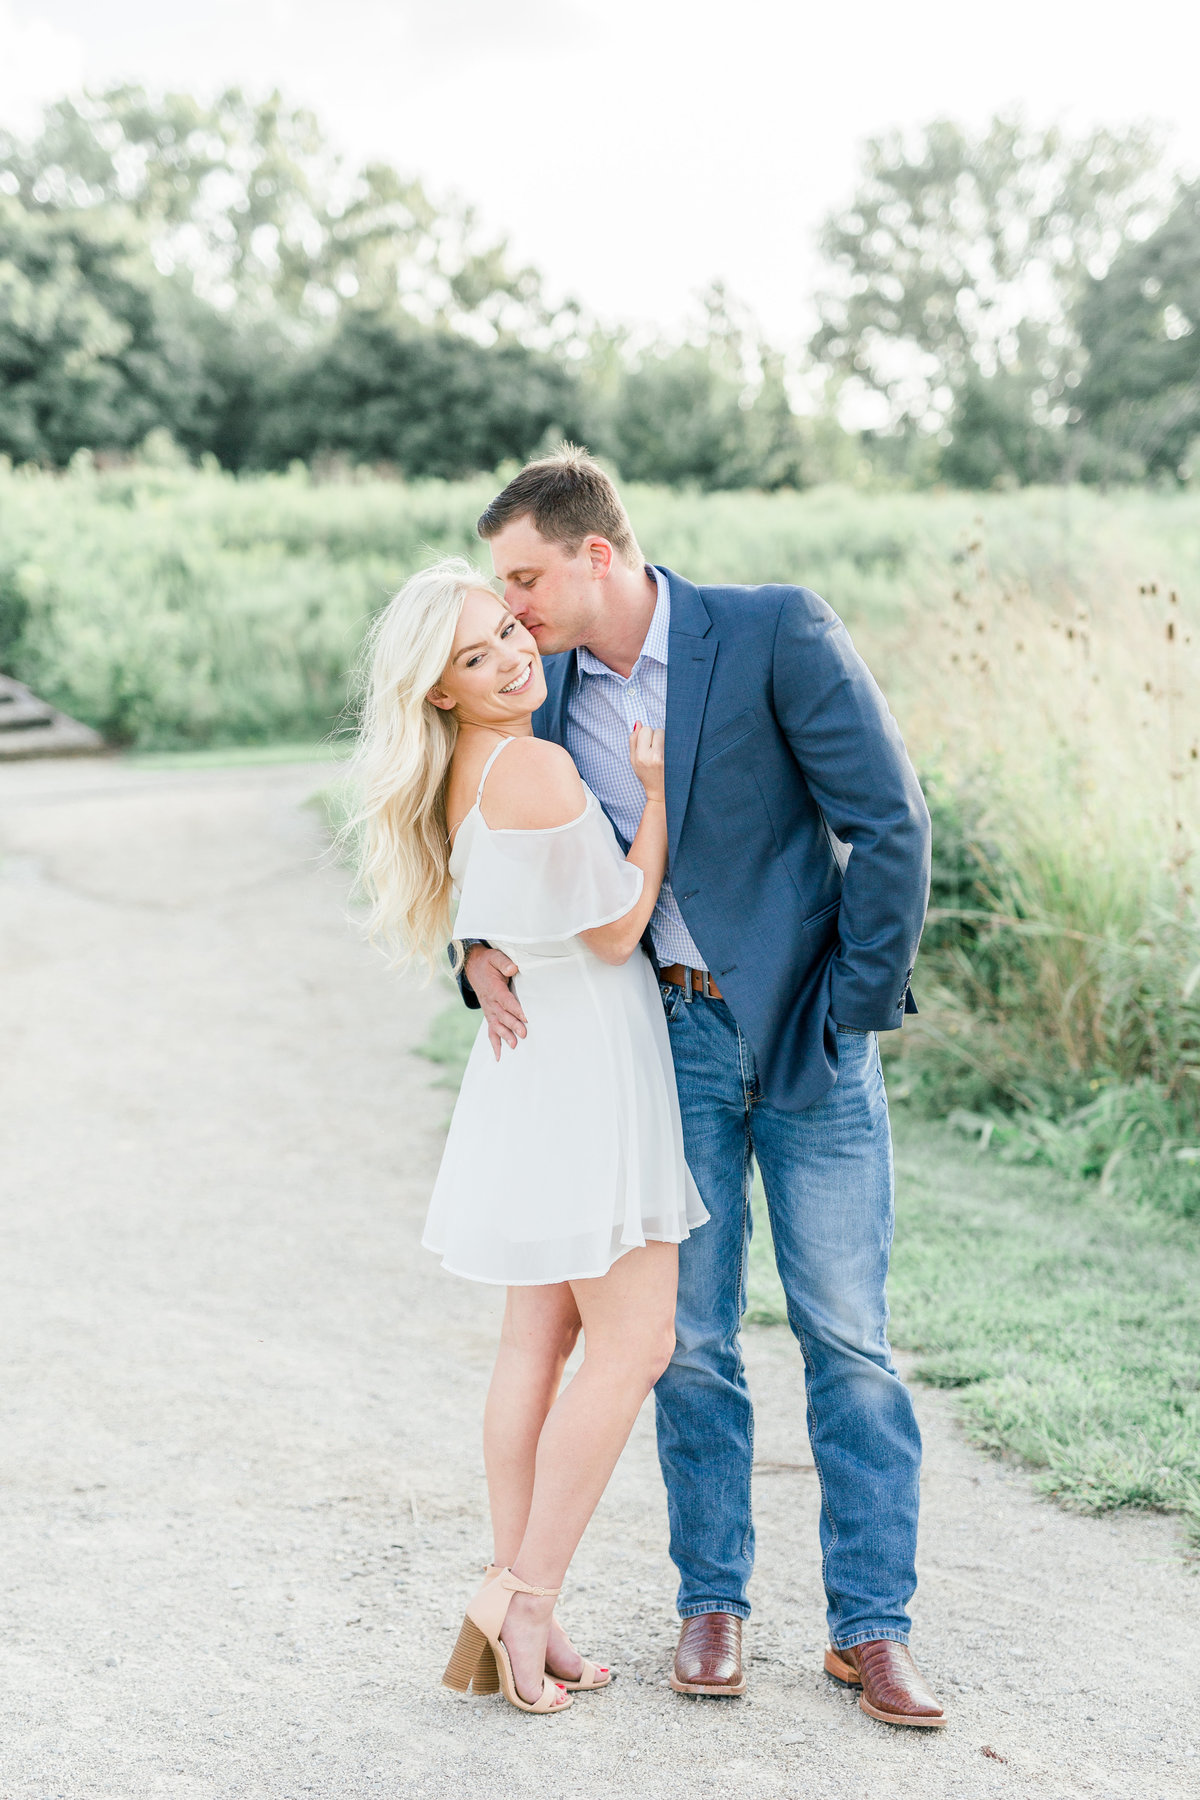 The Handley Co. Wedding Engagement Portrait Light and Airy Photography Photographer Columbus Ohio Destination4